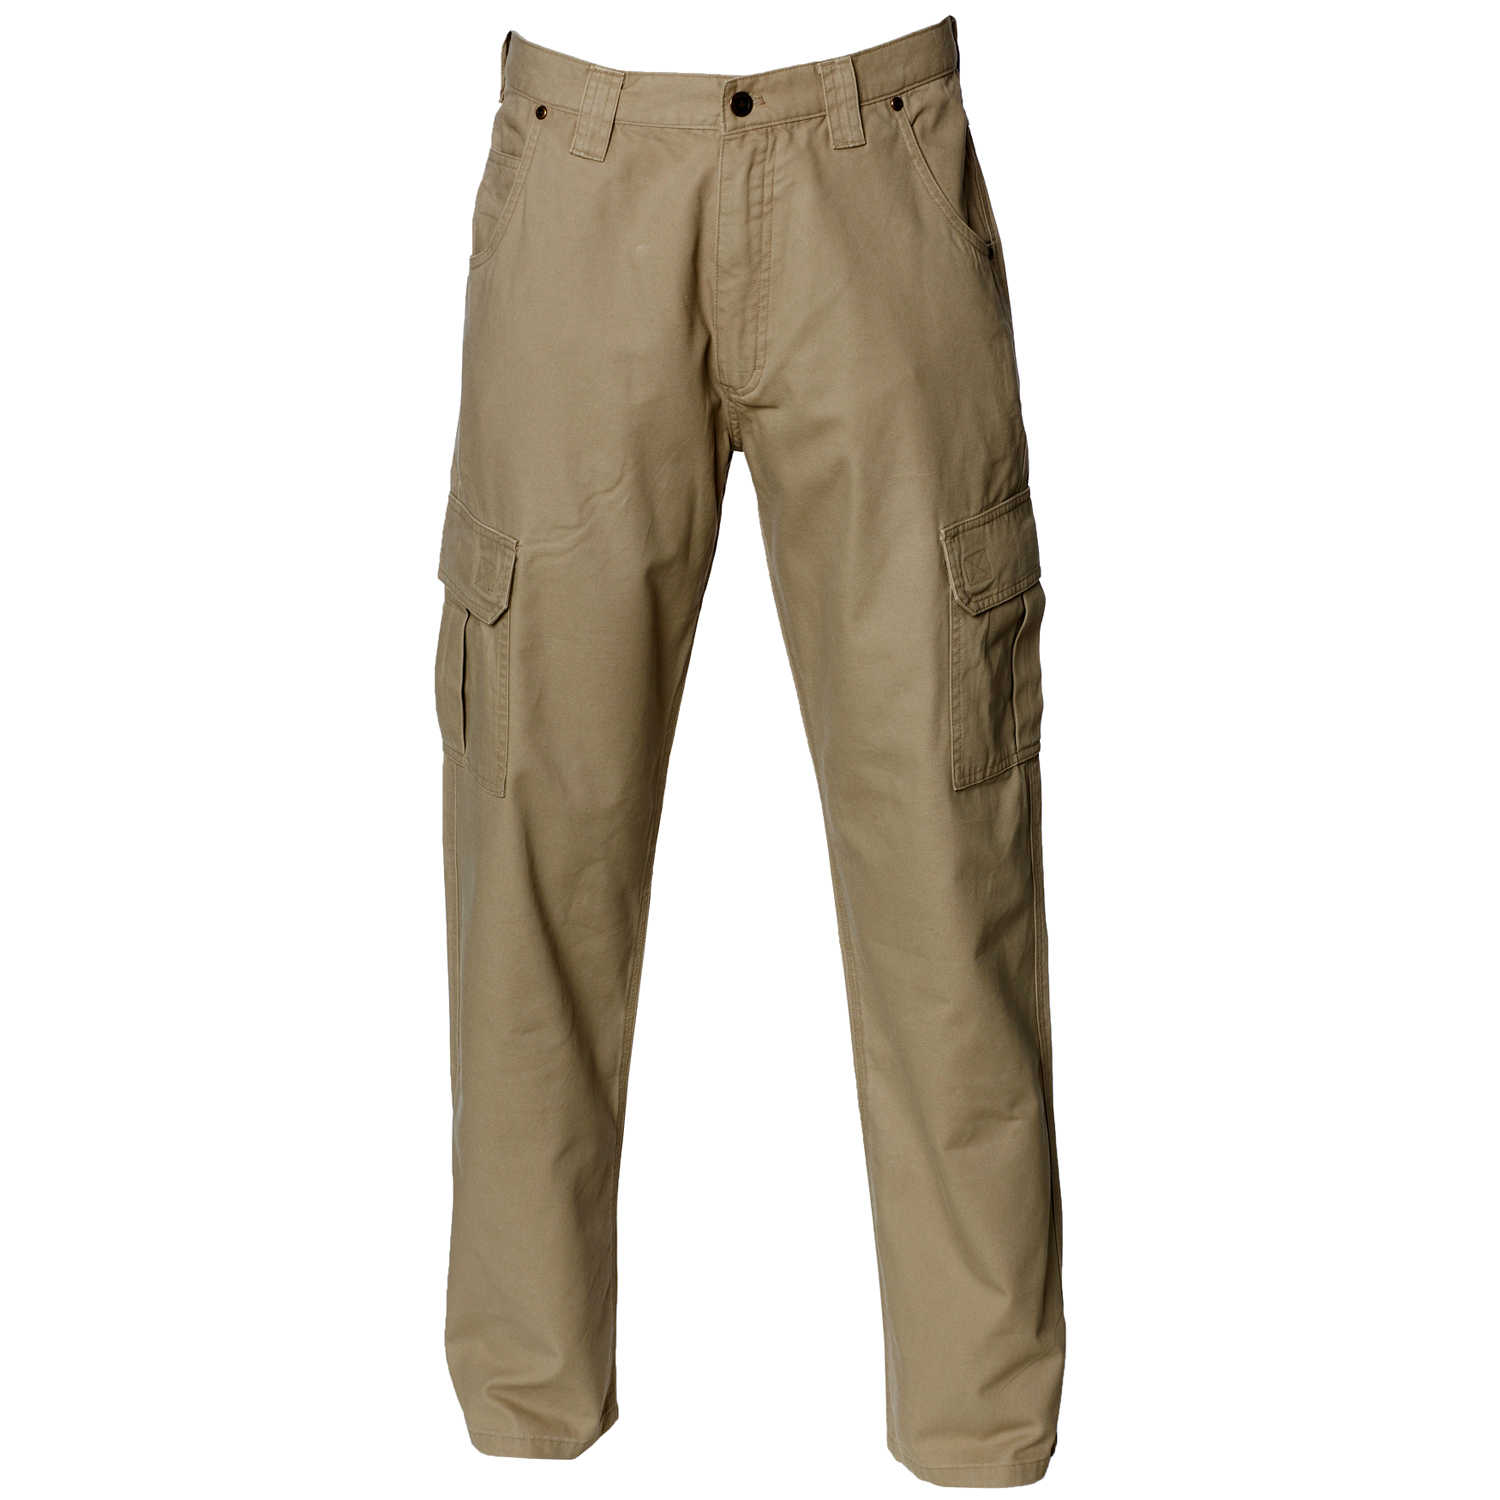 Insect Shield Cargo Pants 32 x 30